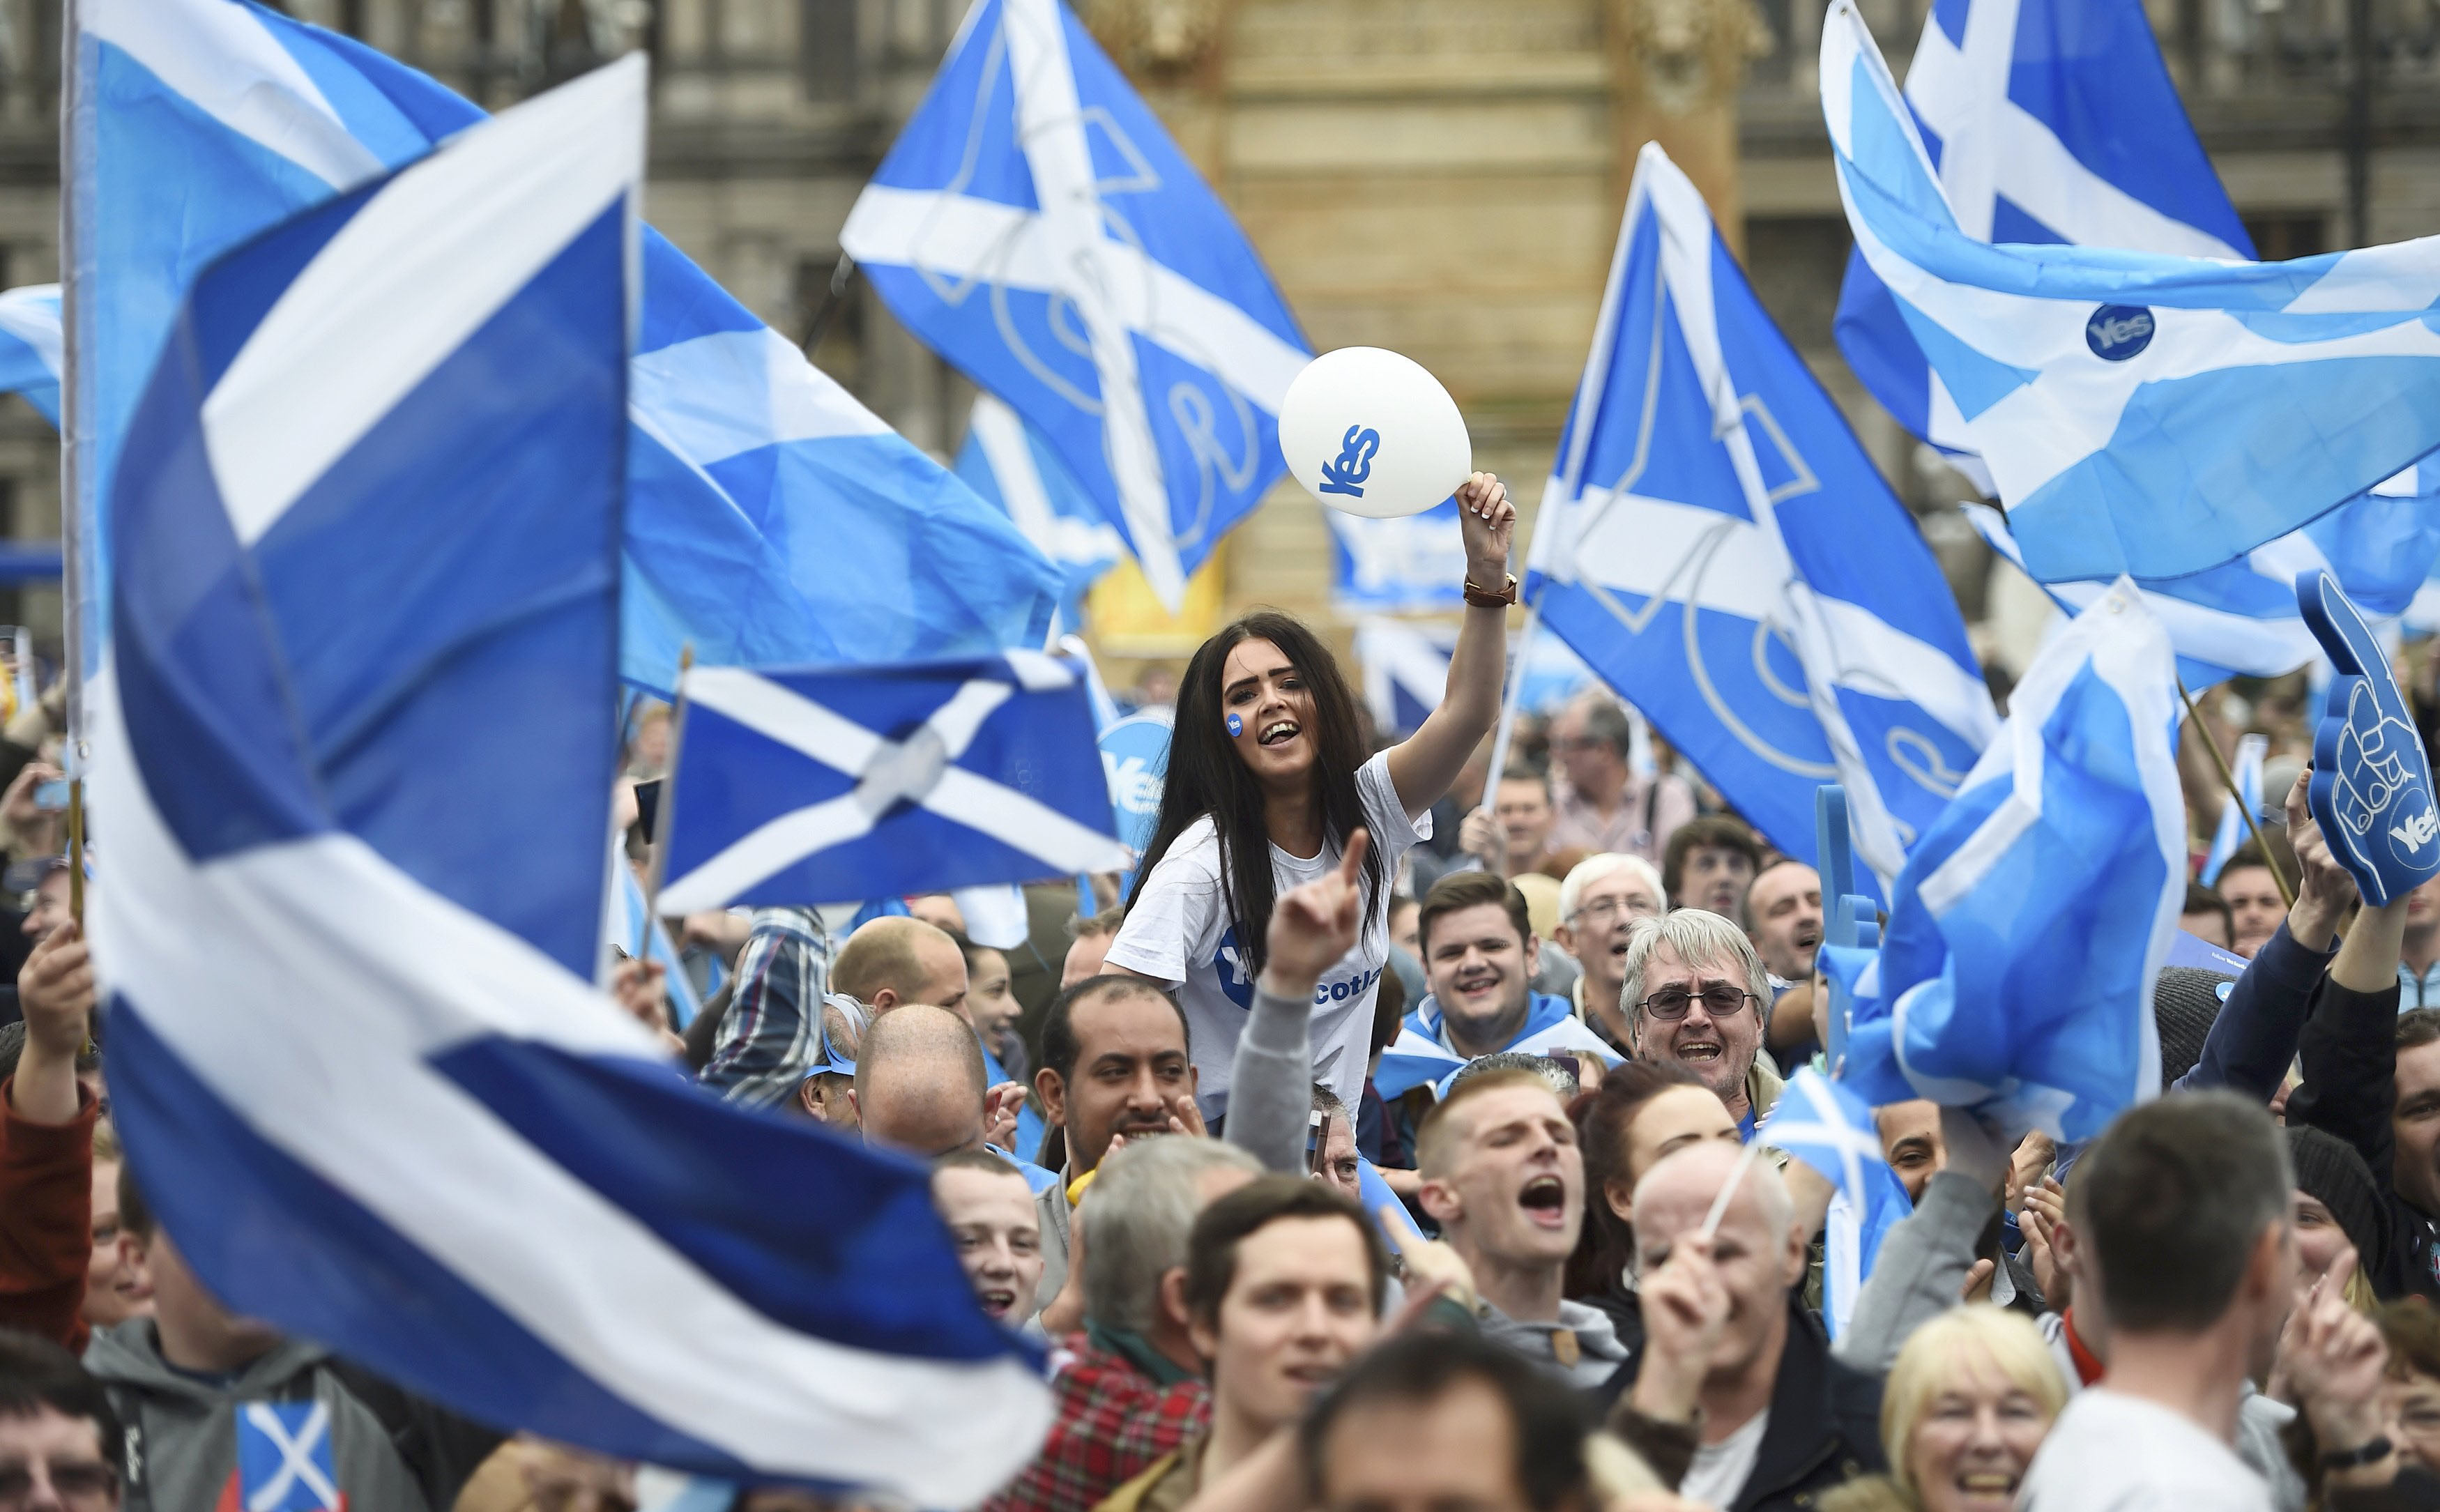 Scottish pro-independence campaigners wave Saltire flags at a